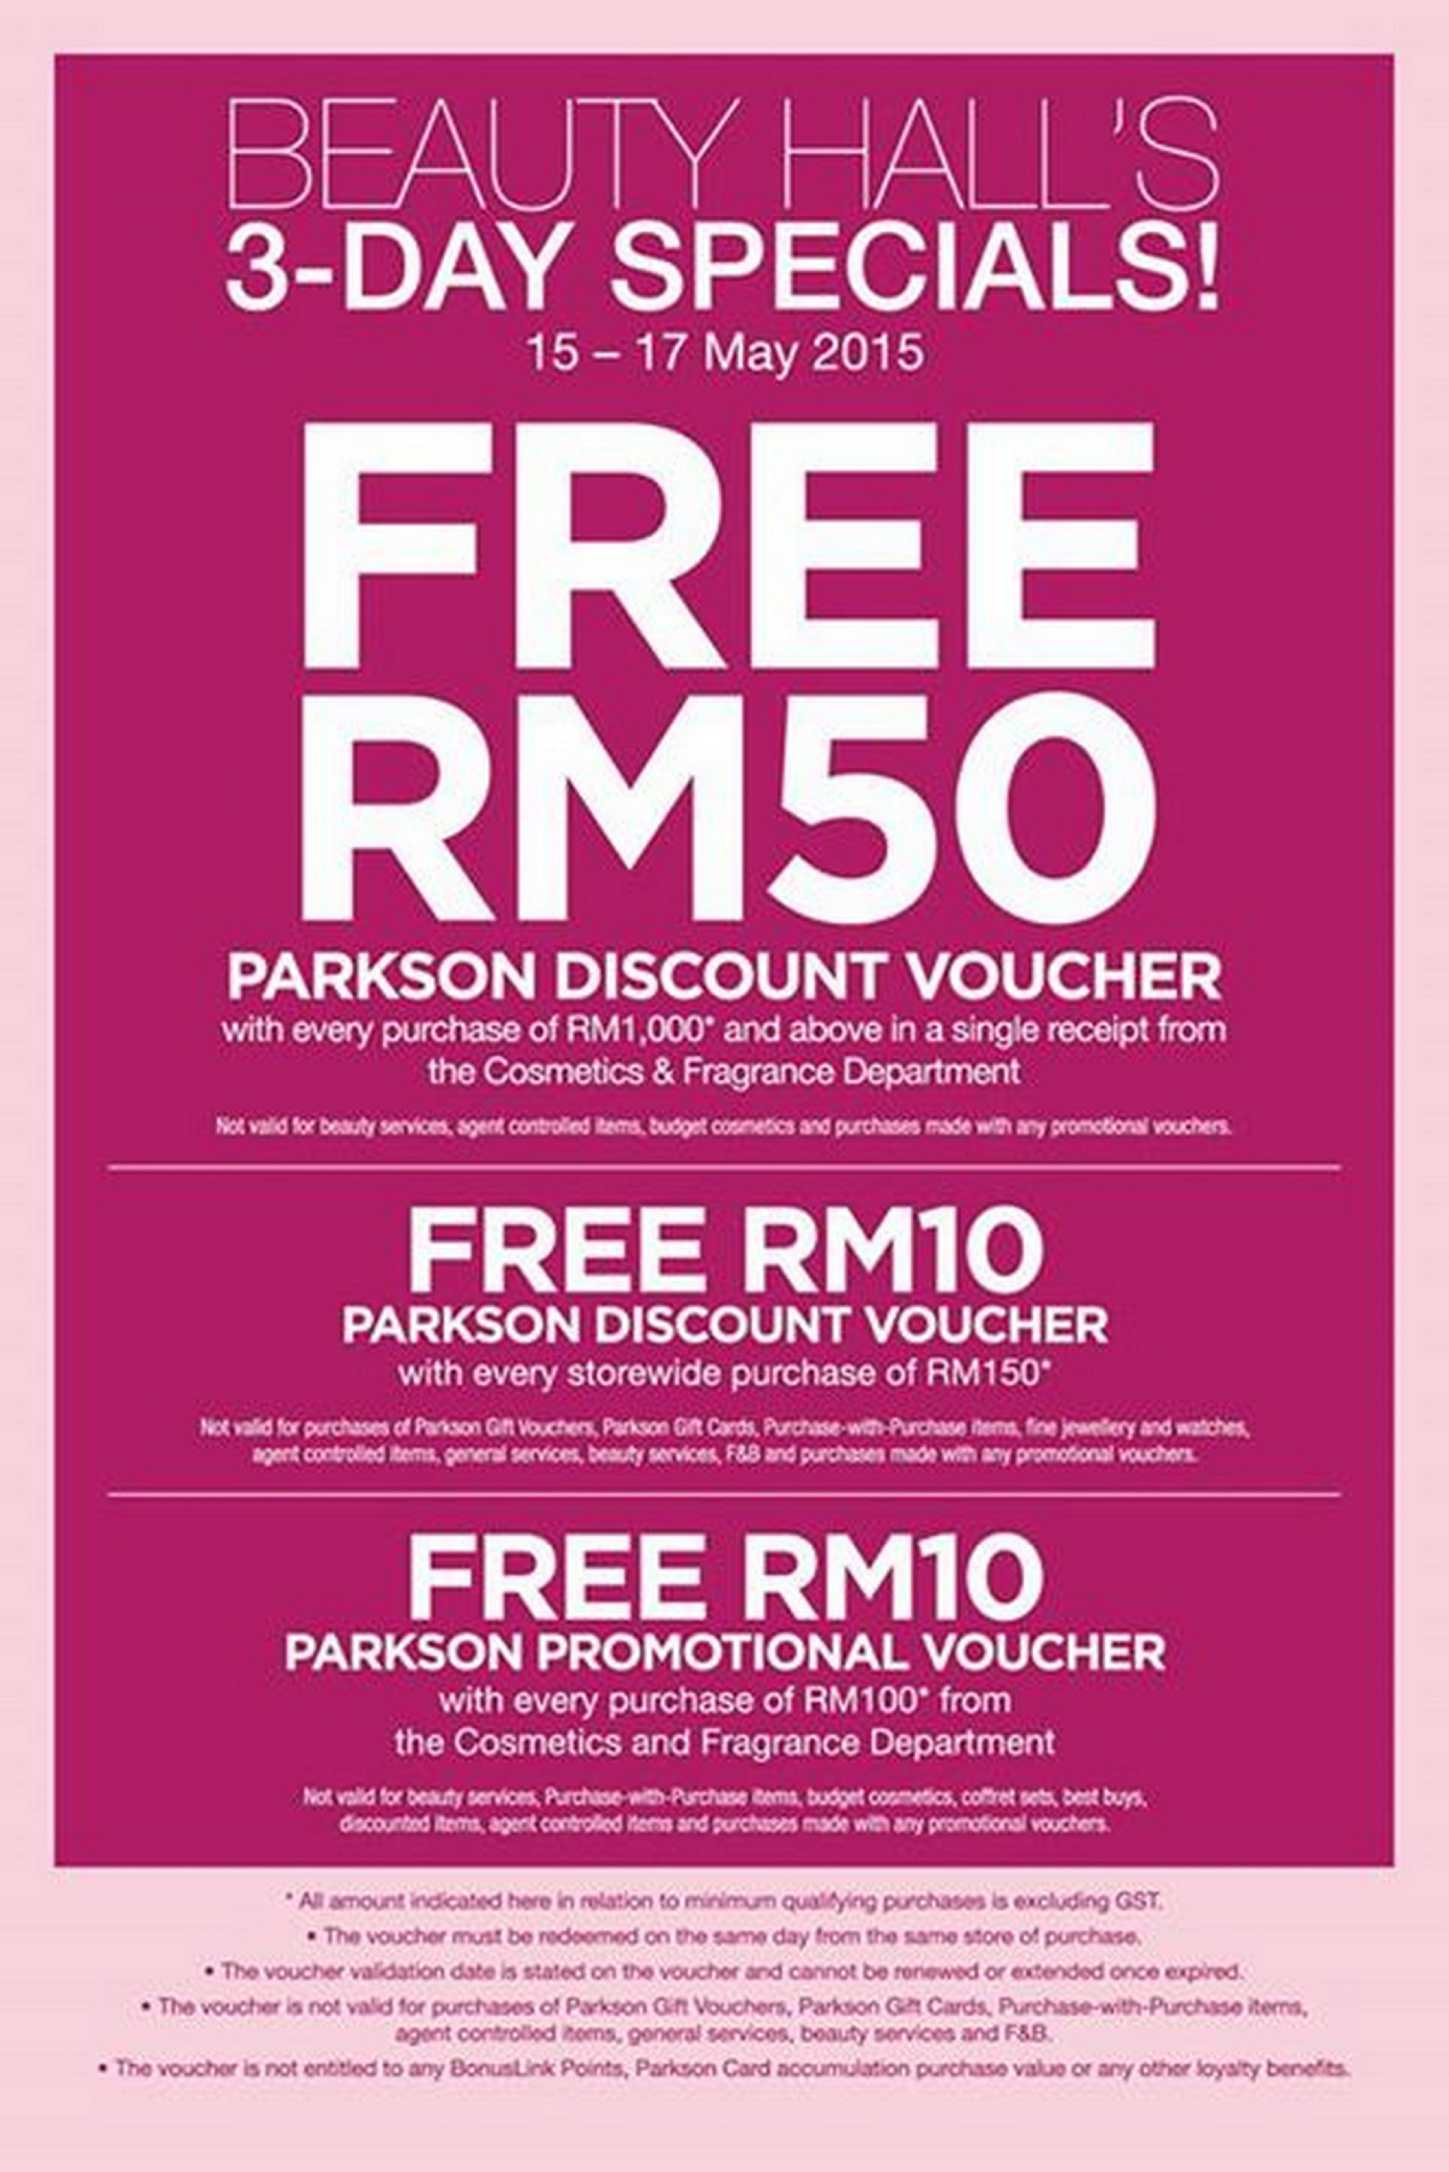 Calameo Get Vouchers Worth Up To Rm50 With Minimum Purchase Of